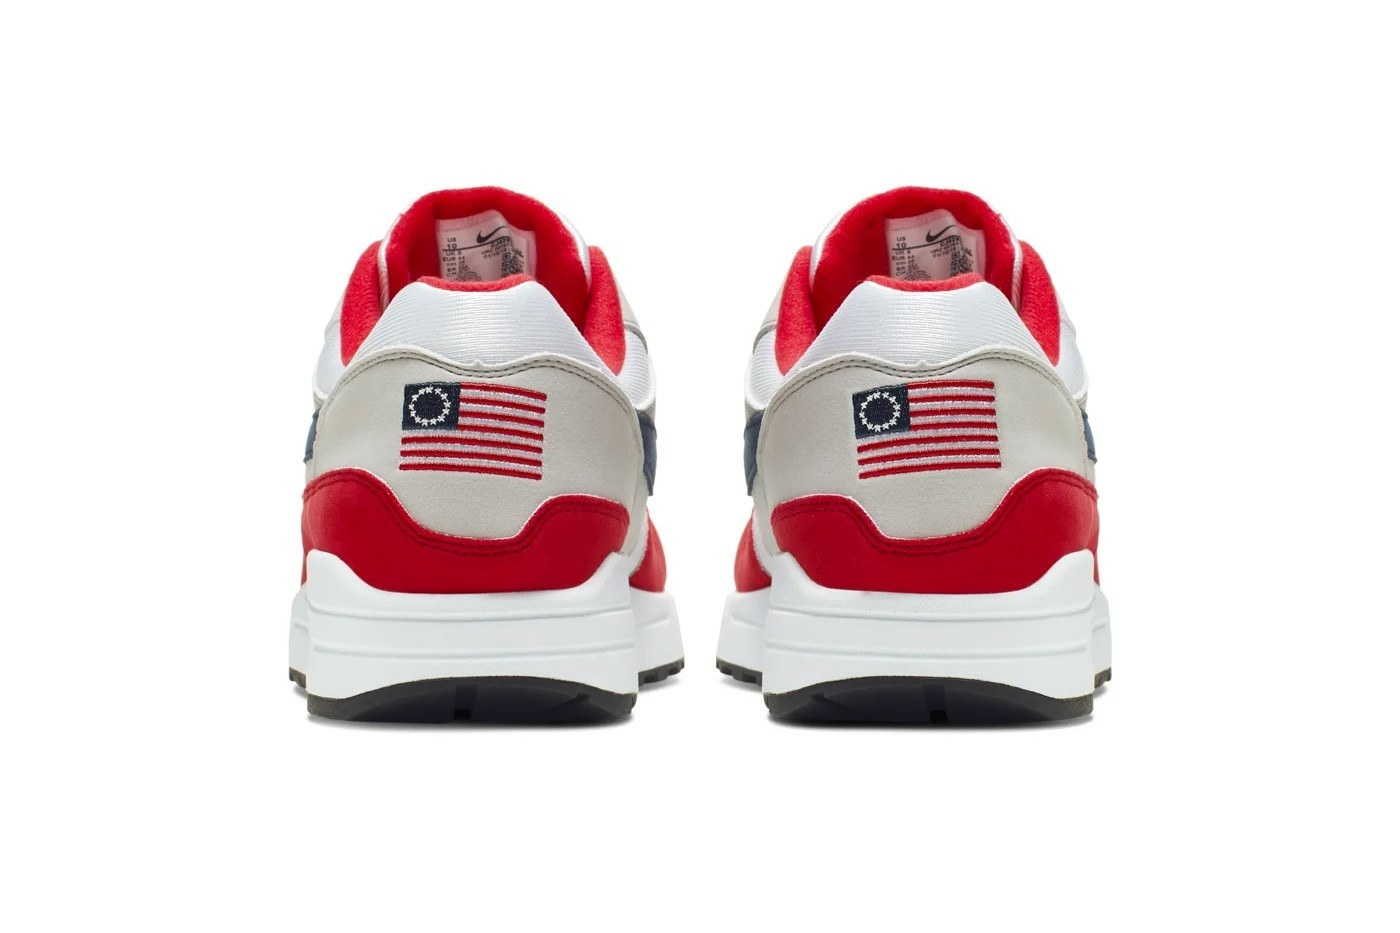 Nike Won't Launch Its Air Max 1 Featuring The Betsy Ross Flag